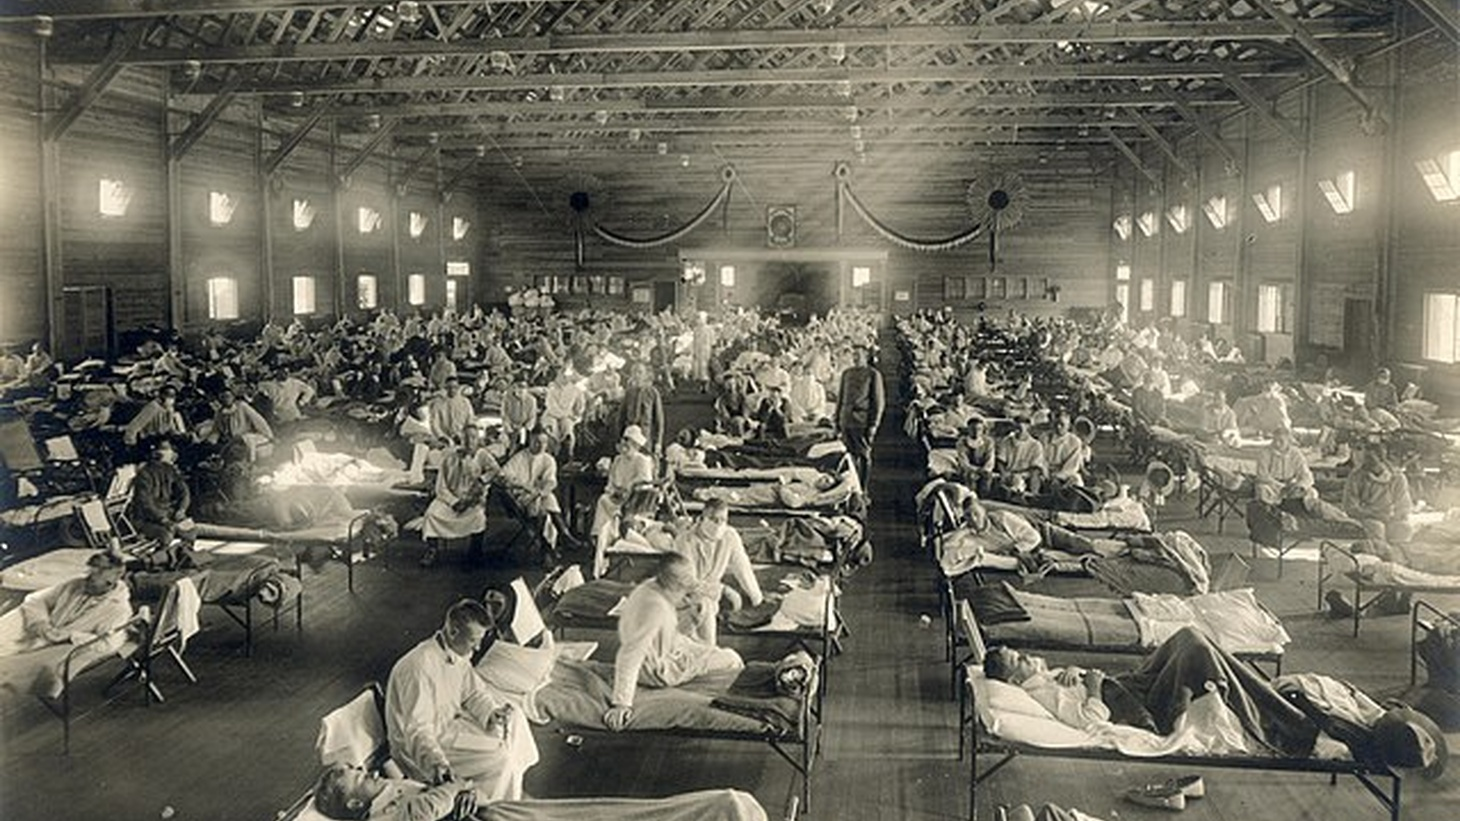 Some 700,000 Americans died due to the 1918 Spanish Flu.